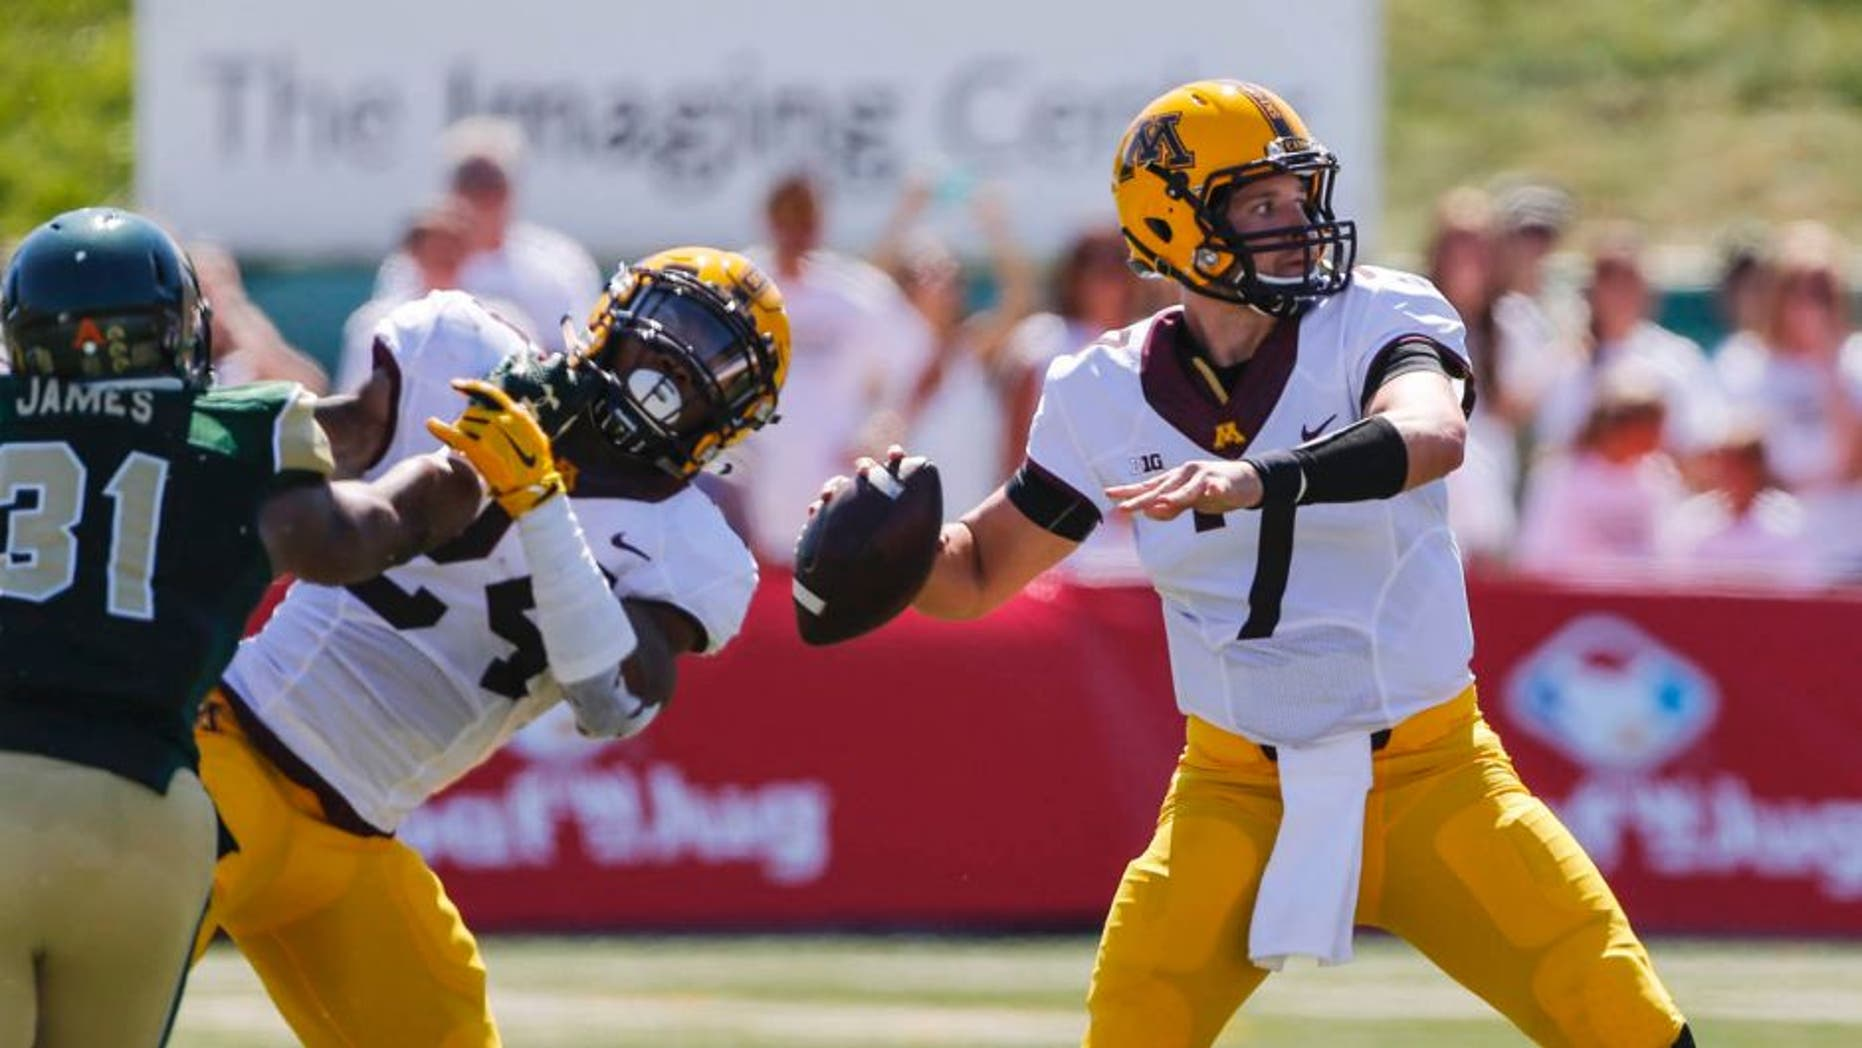 Minnesota Golden Gophers quarterback Mitch Leidner is protected by teammate Rodney Smith against Colorado State Rams linebacker Cory James during the first quarter at Sonny Lubick Field at Hughes Stadium in Fort Collins, Colo., on Sunday, Sept. 12, 2015.